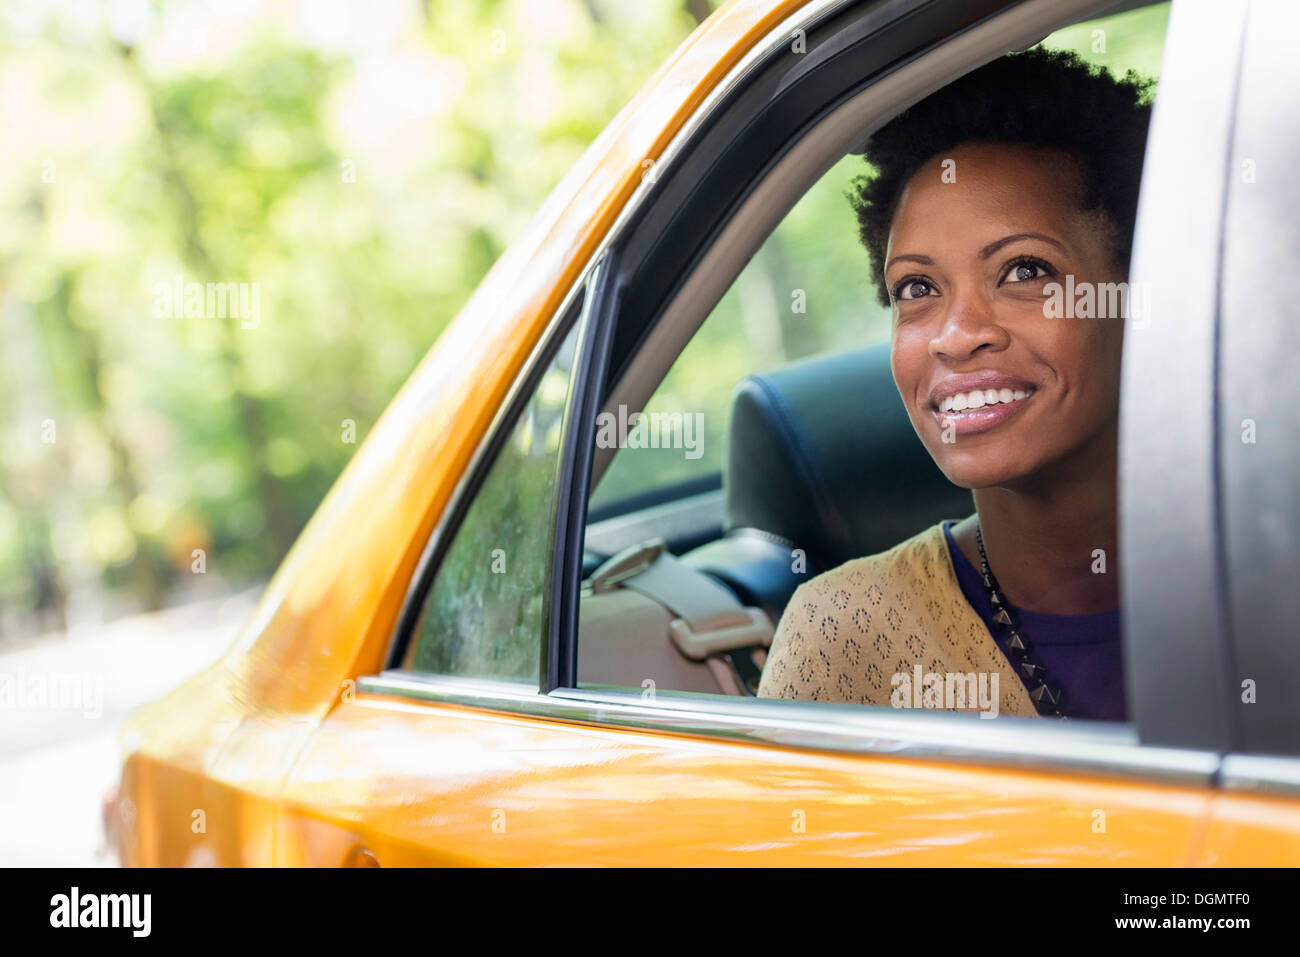 A woman sitting in the rear passenger seat of a yellow cab. - Stock Image